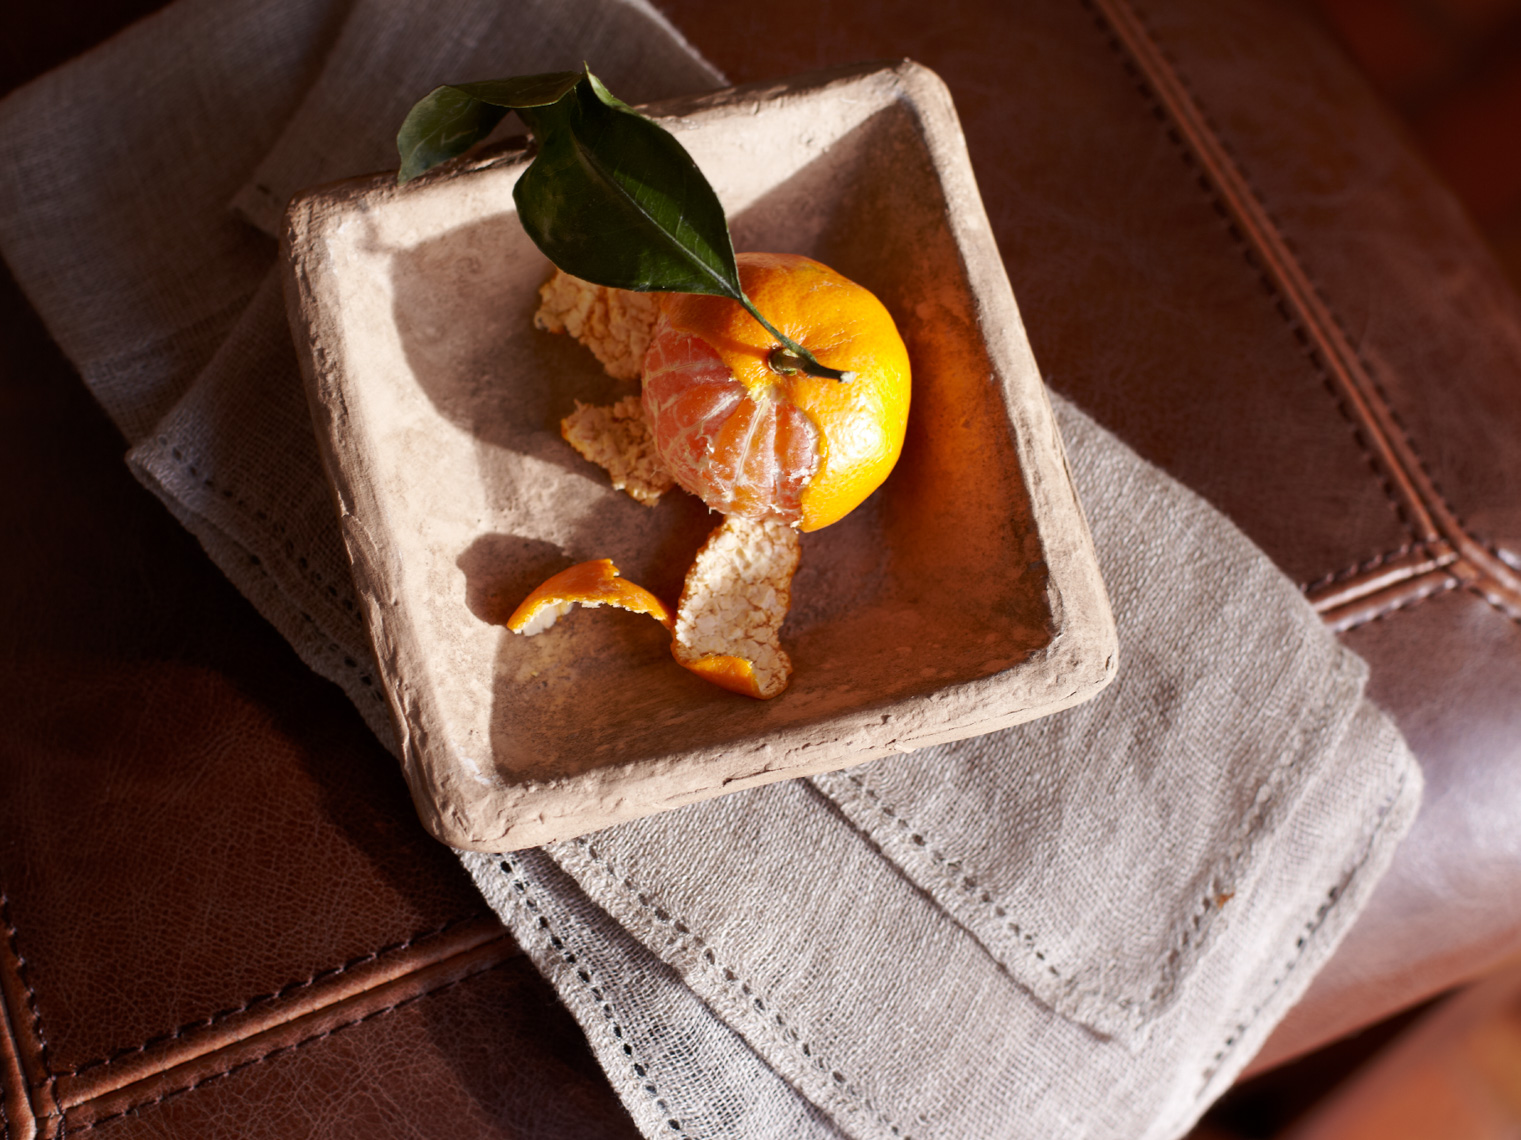 Orange in wood bowl hilip Harvey Photography, San Francisco, California, still life, interiors, food, lifestyle and product photography